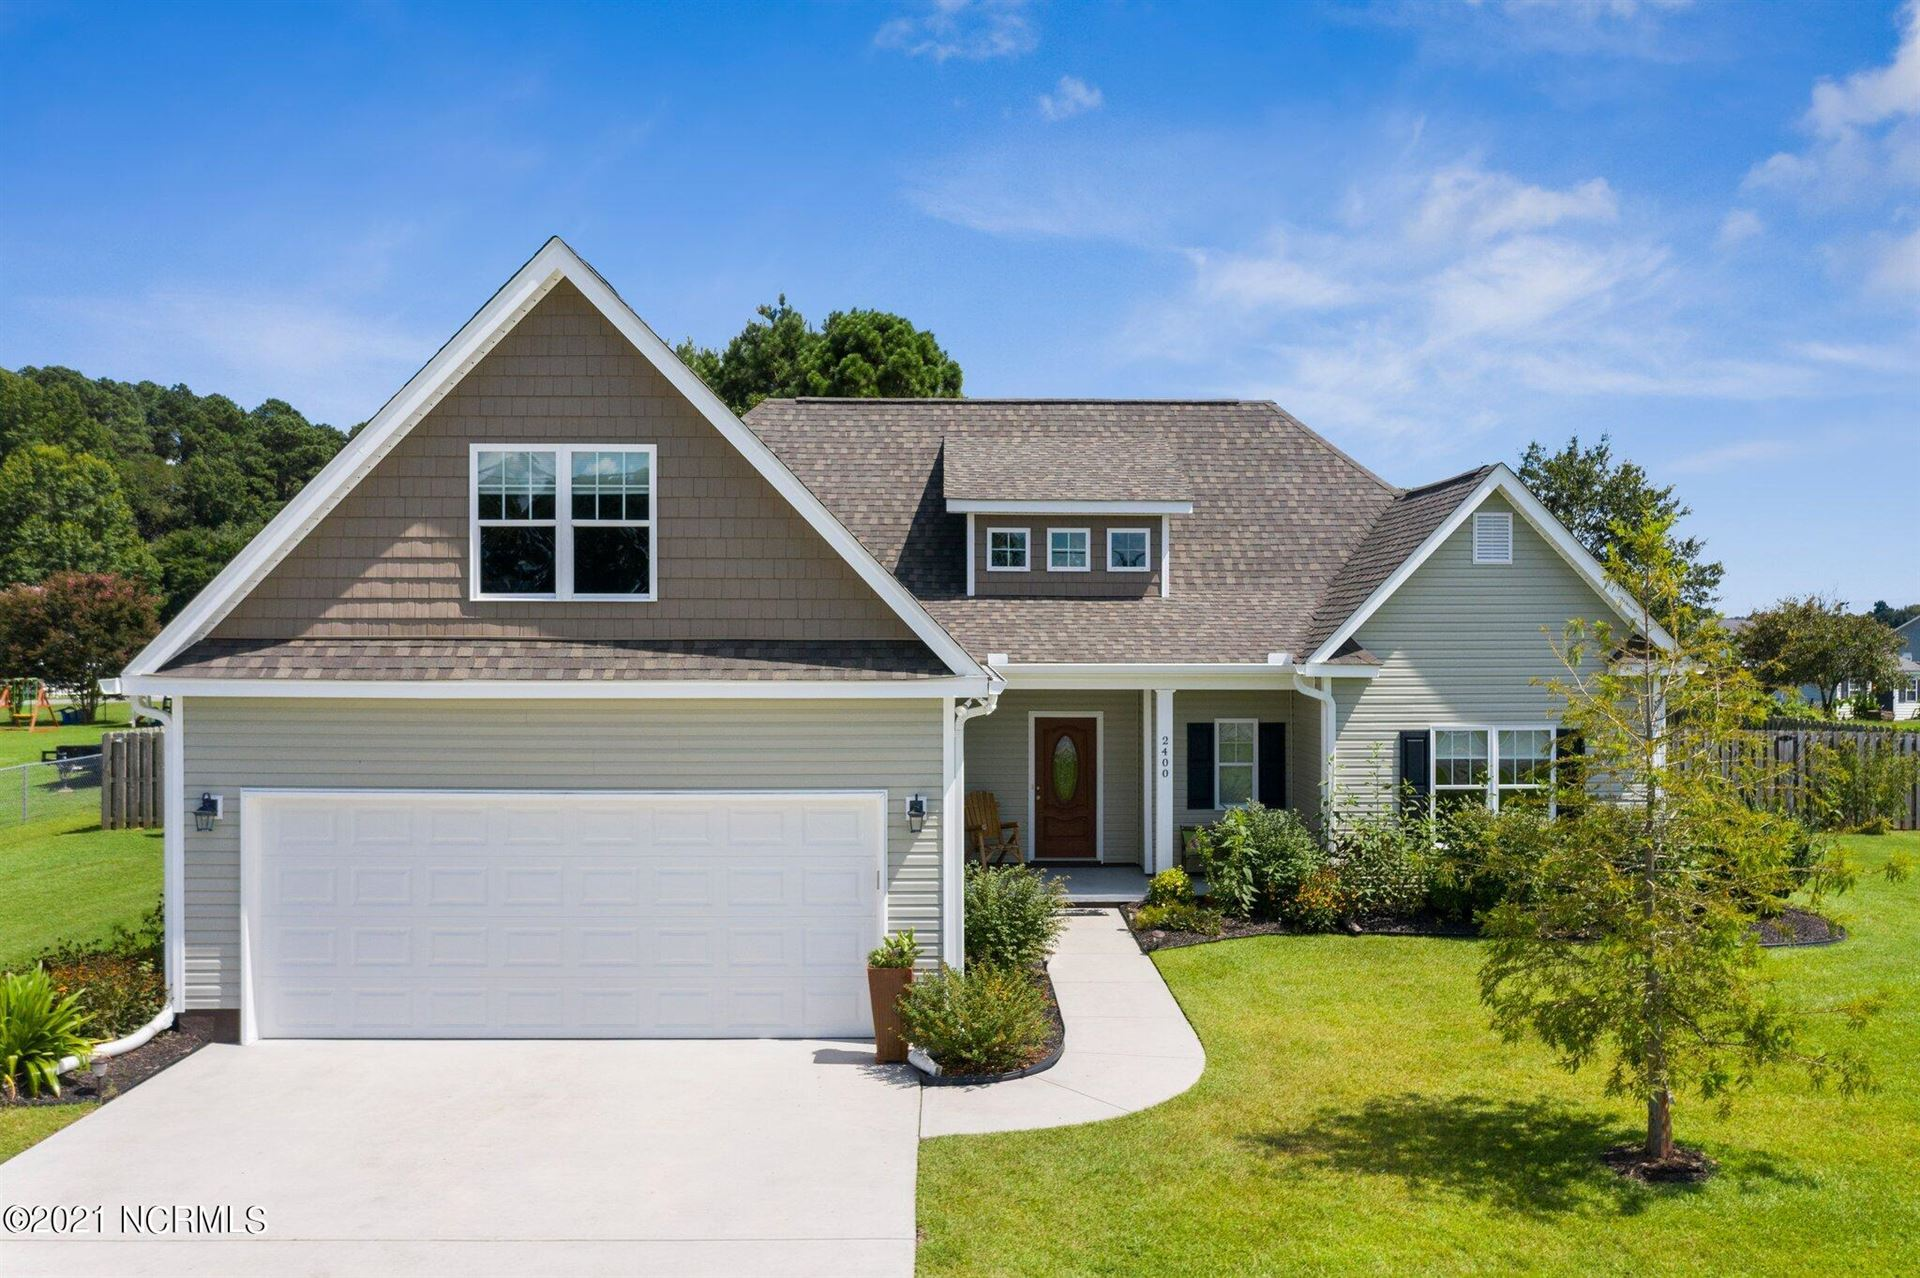 Photo of 2400 Ivy Road, Greenville, NC 27858 (MLS # 100288167)